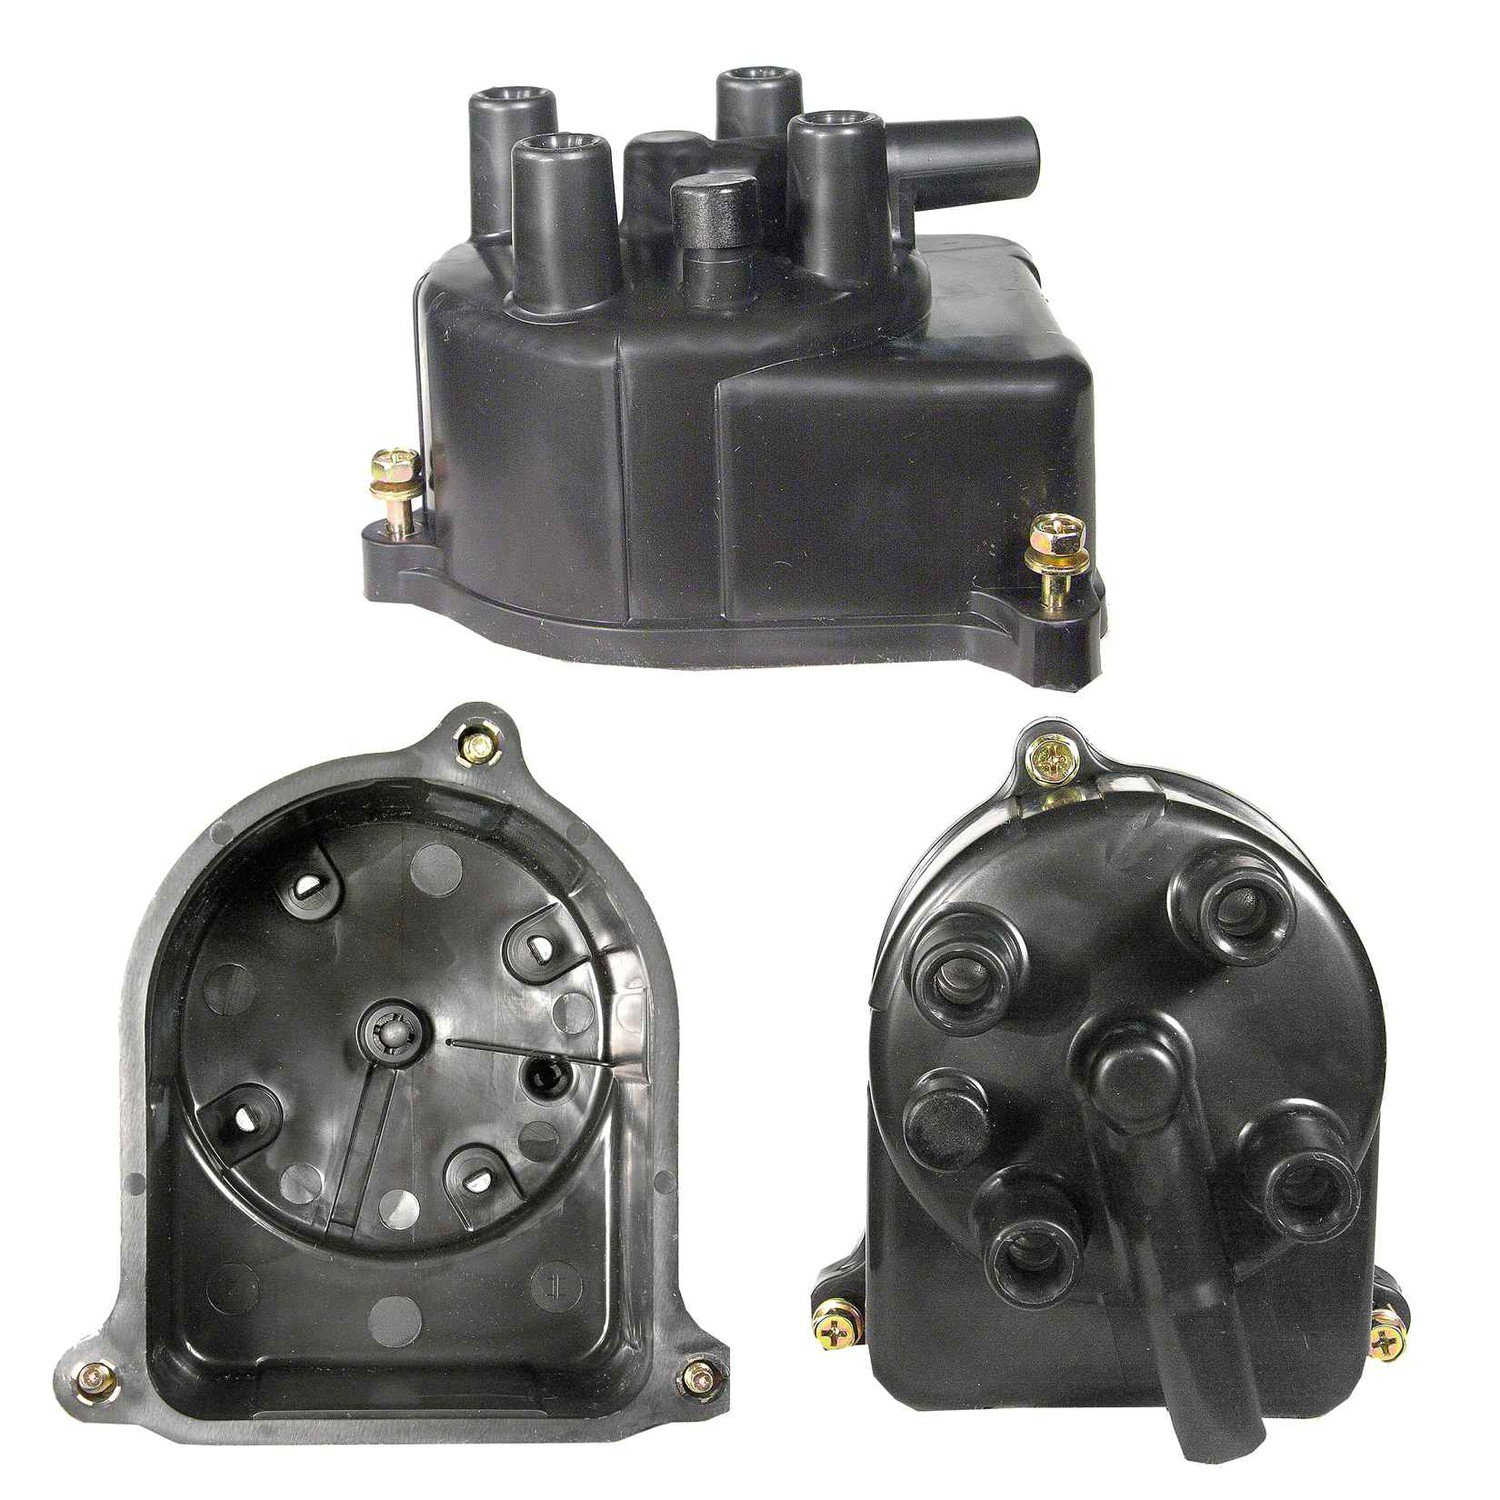 DISTRIBUTOR CAP PRELUDE 1992 1993 1994 1995 1996 1997 1998 1999 2001 ACCORD 1997 1996-1992